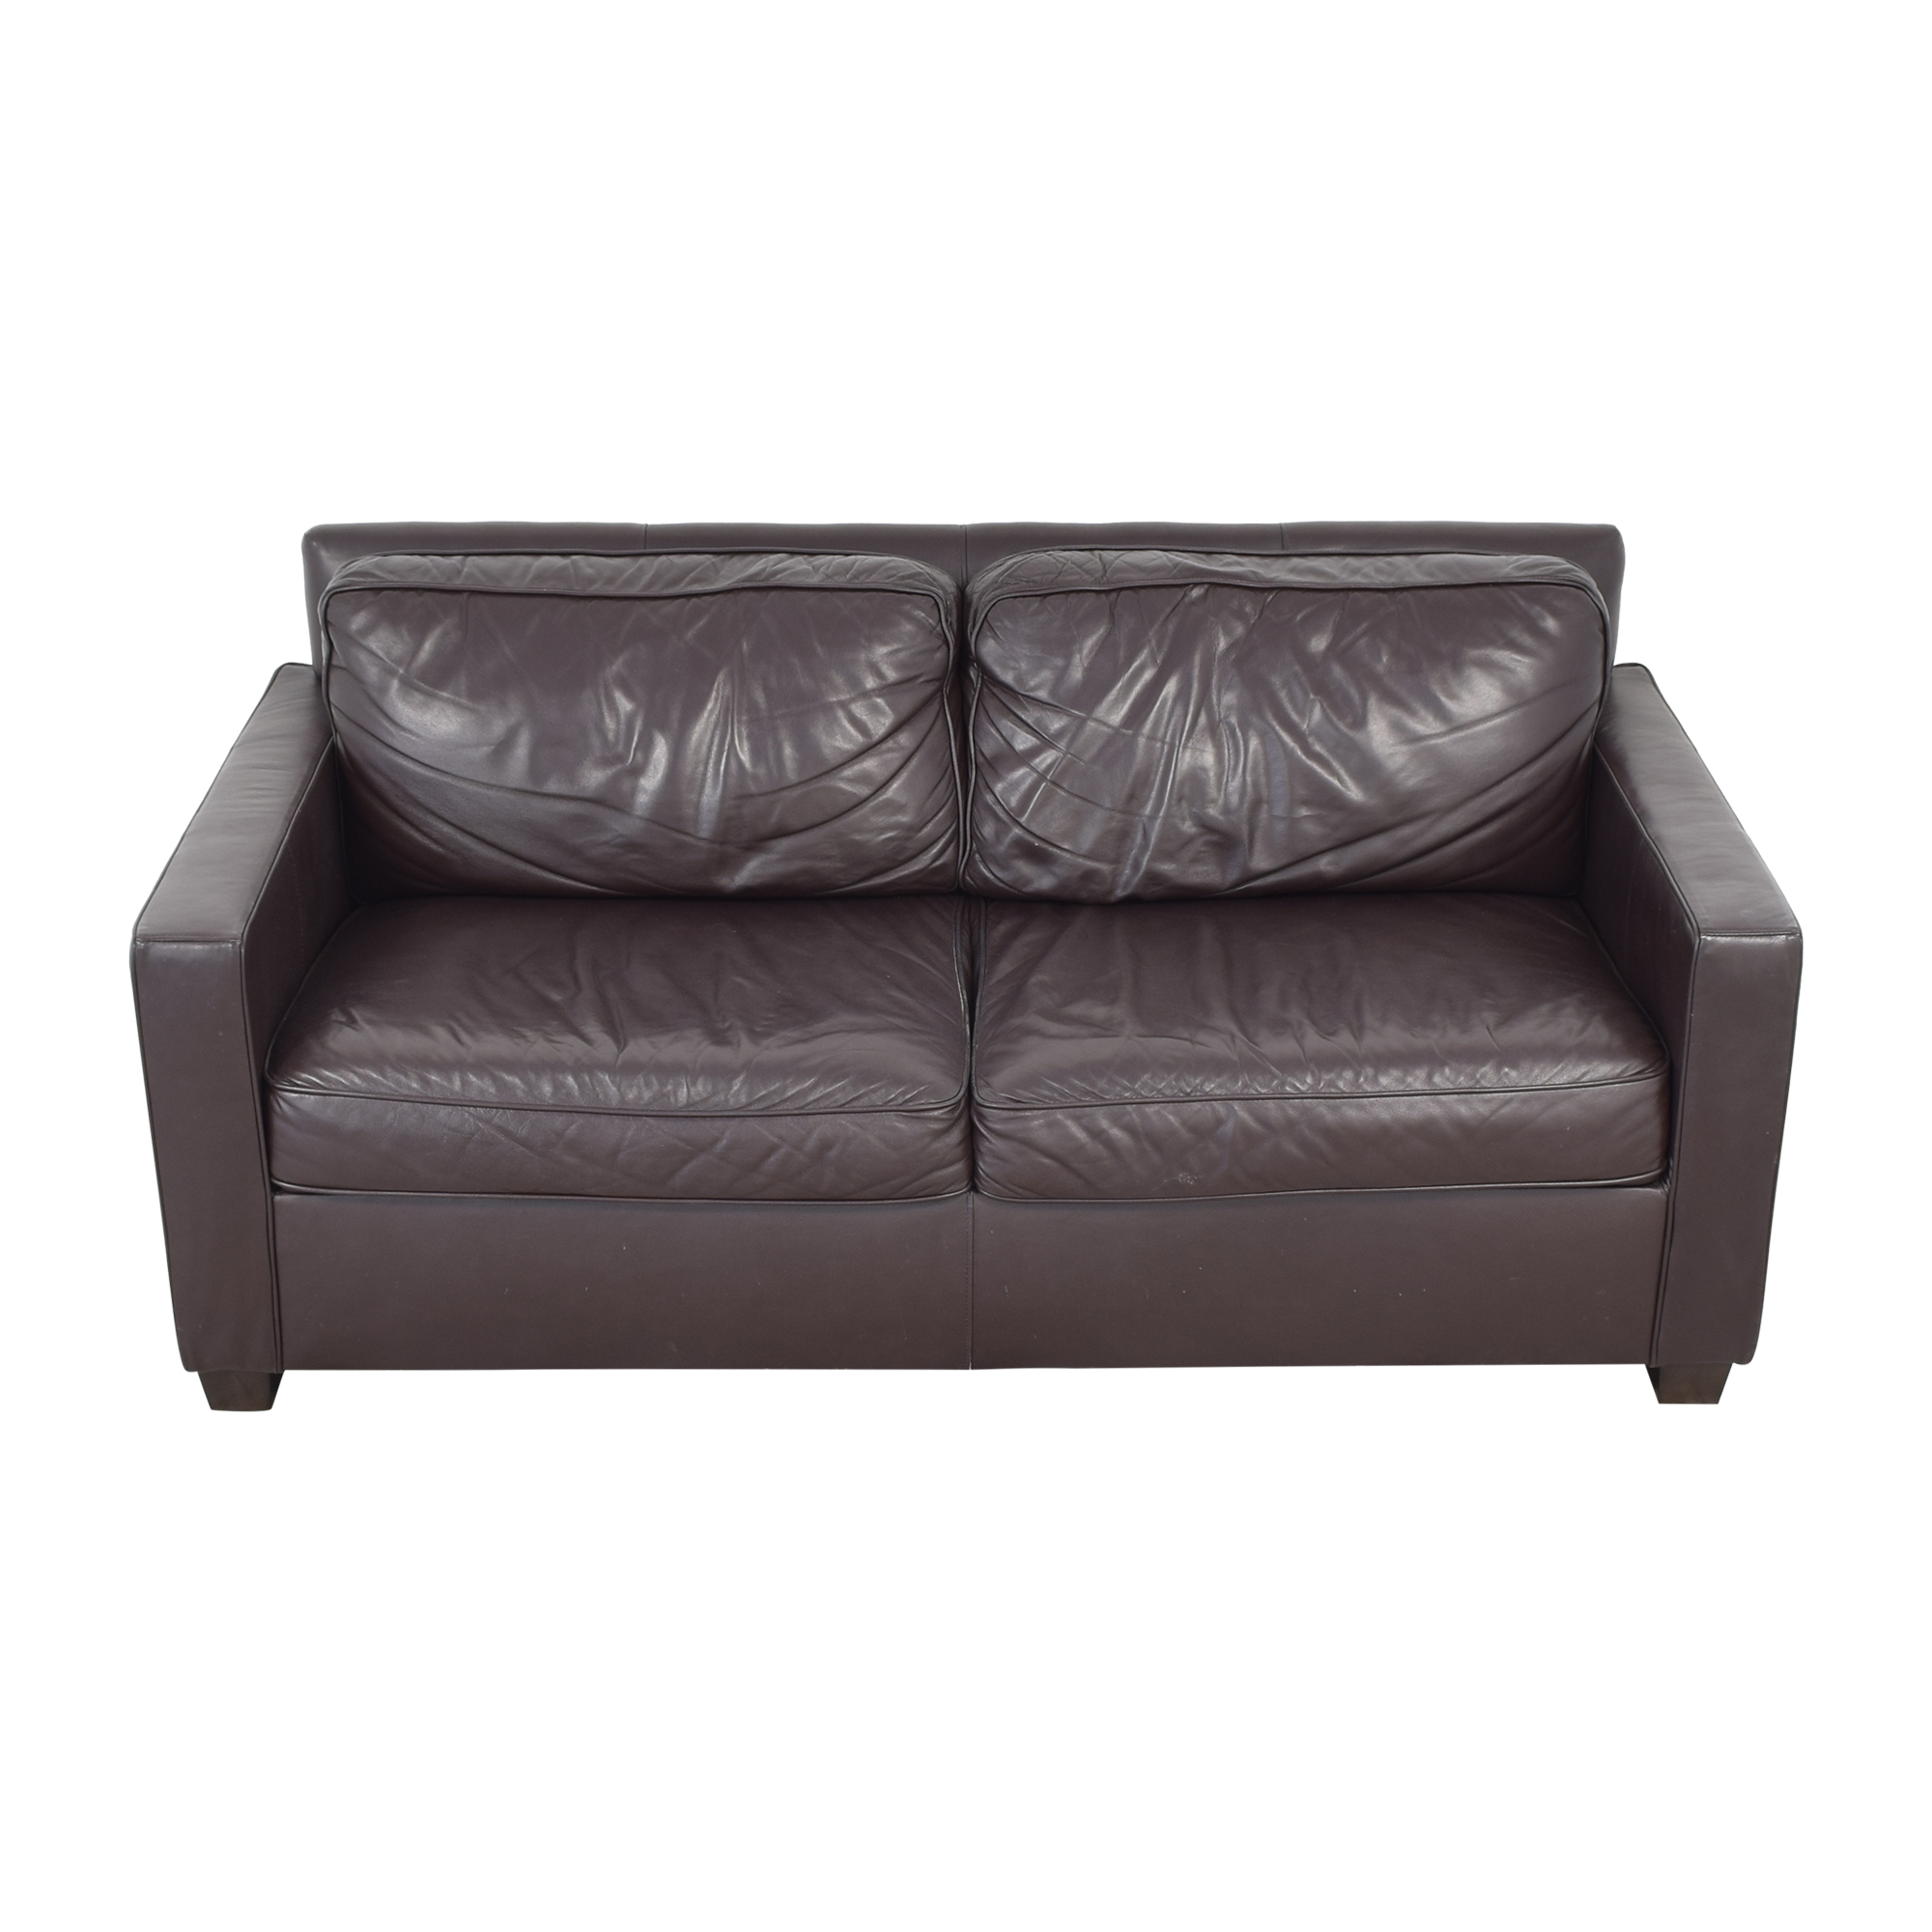 West Elm West Elm Henry Leather Sofa with Ottoman for sale